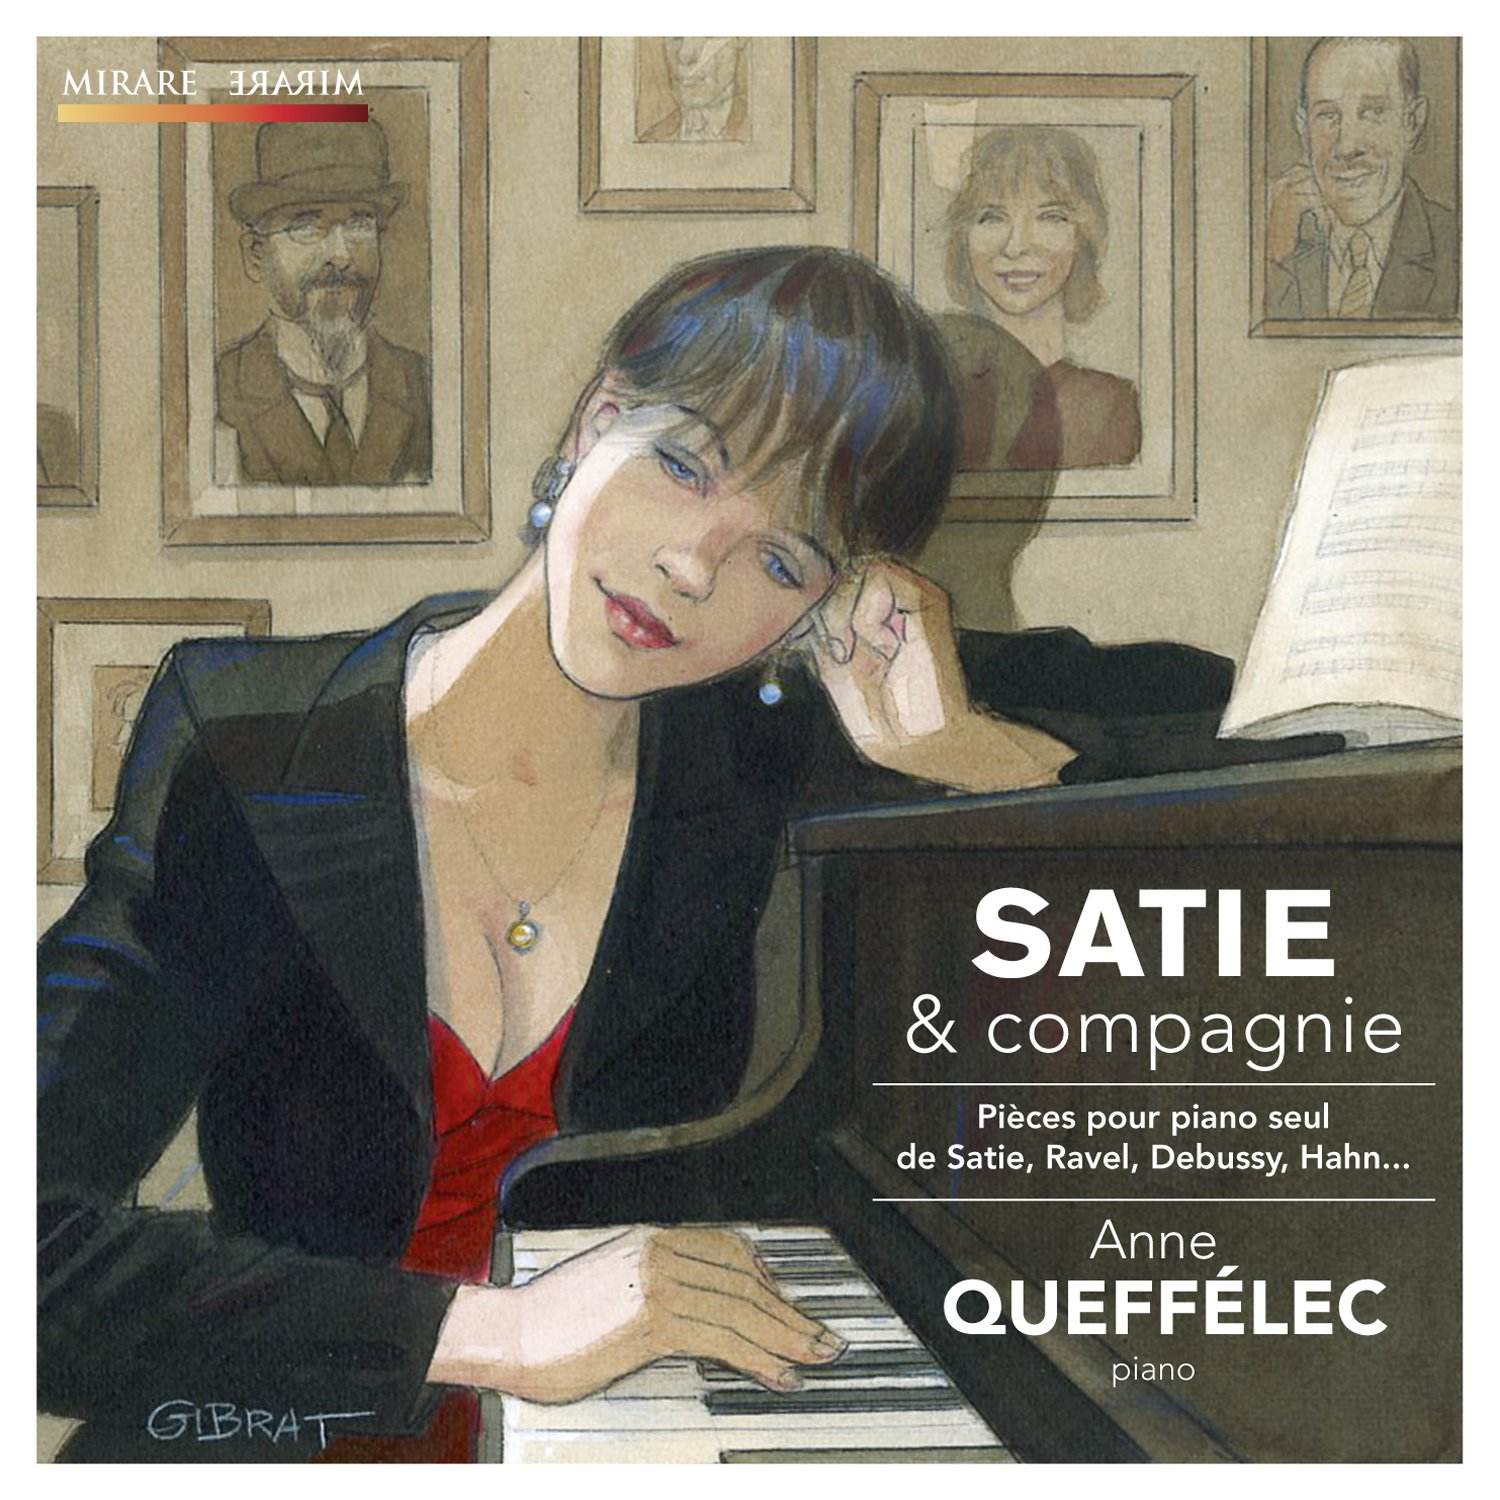 Starke Magnete Amazon Lebrecht Cd Of The Week